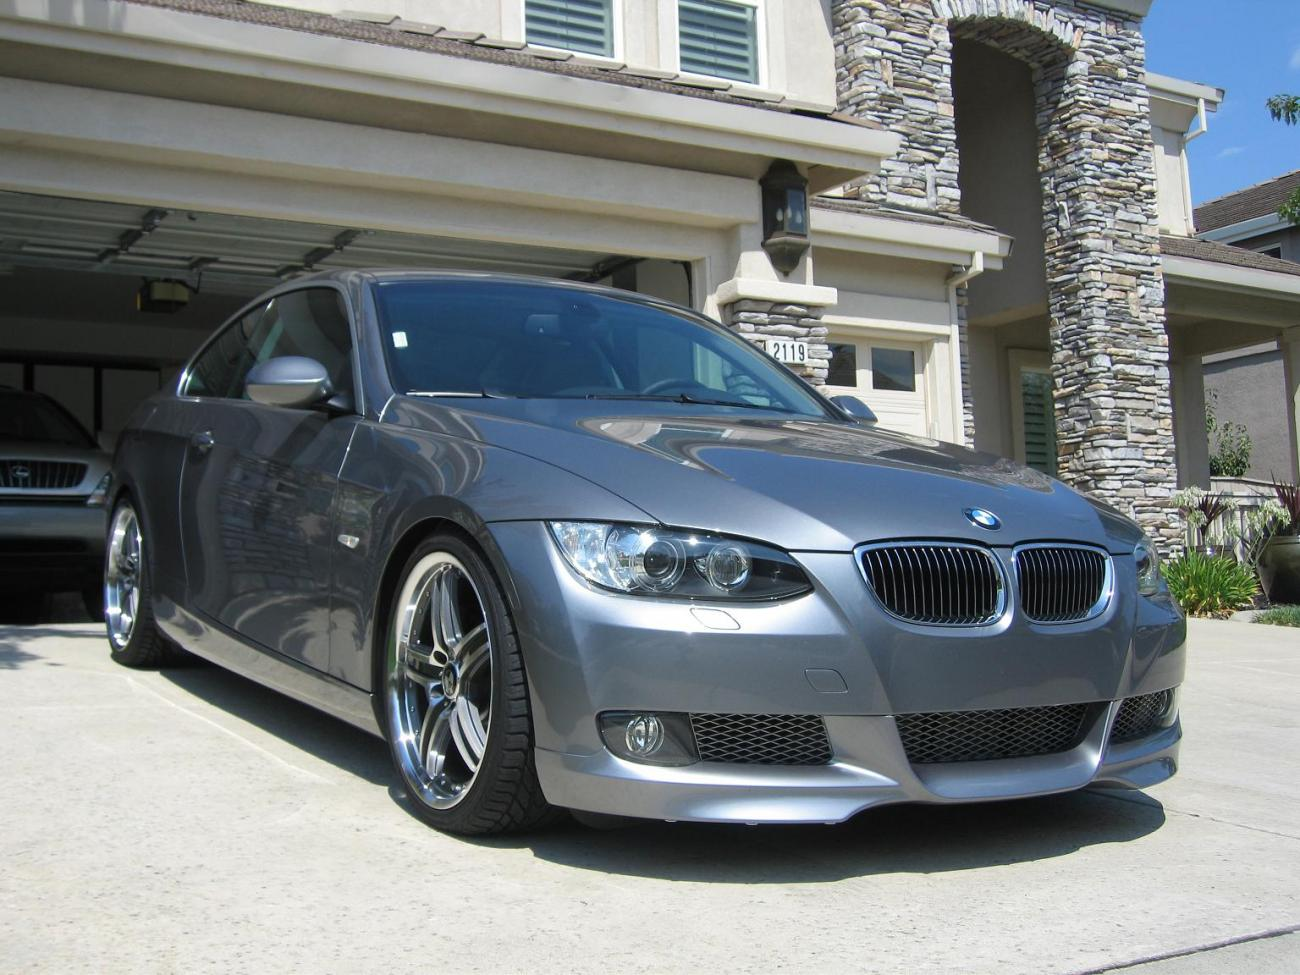 cars news gabby second hand 2007 bmw 335i e92 my08 for sale. Black Bedroom Furniture Sets. Home Design Ideas